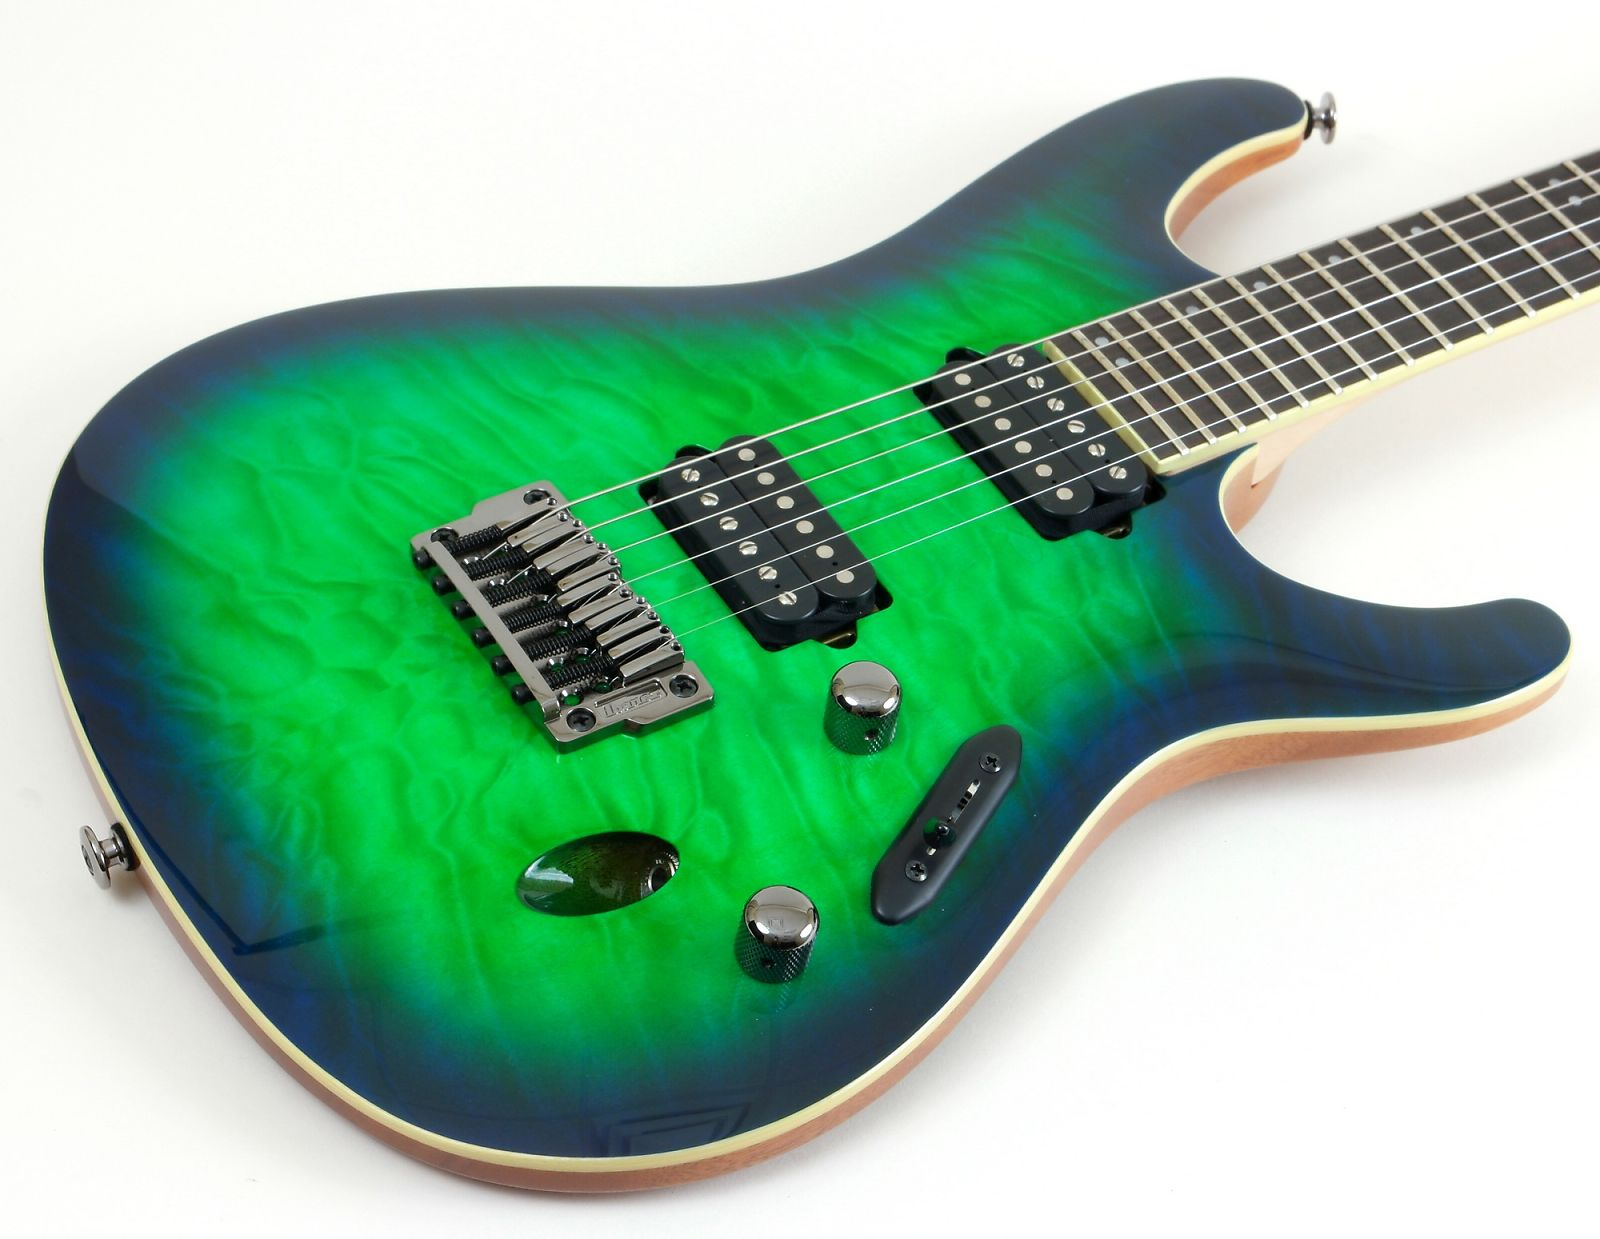 ibanez s6521q slg s prestige series hh quilted maple top reverb. Black Bedroom Furniture Sets. Home Design Ideas